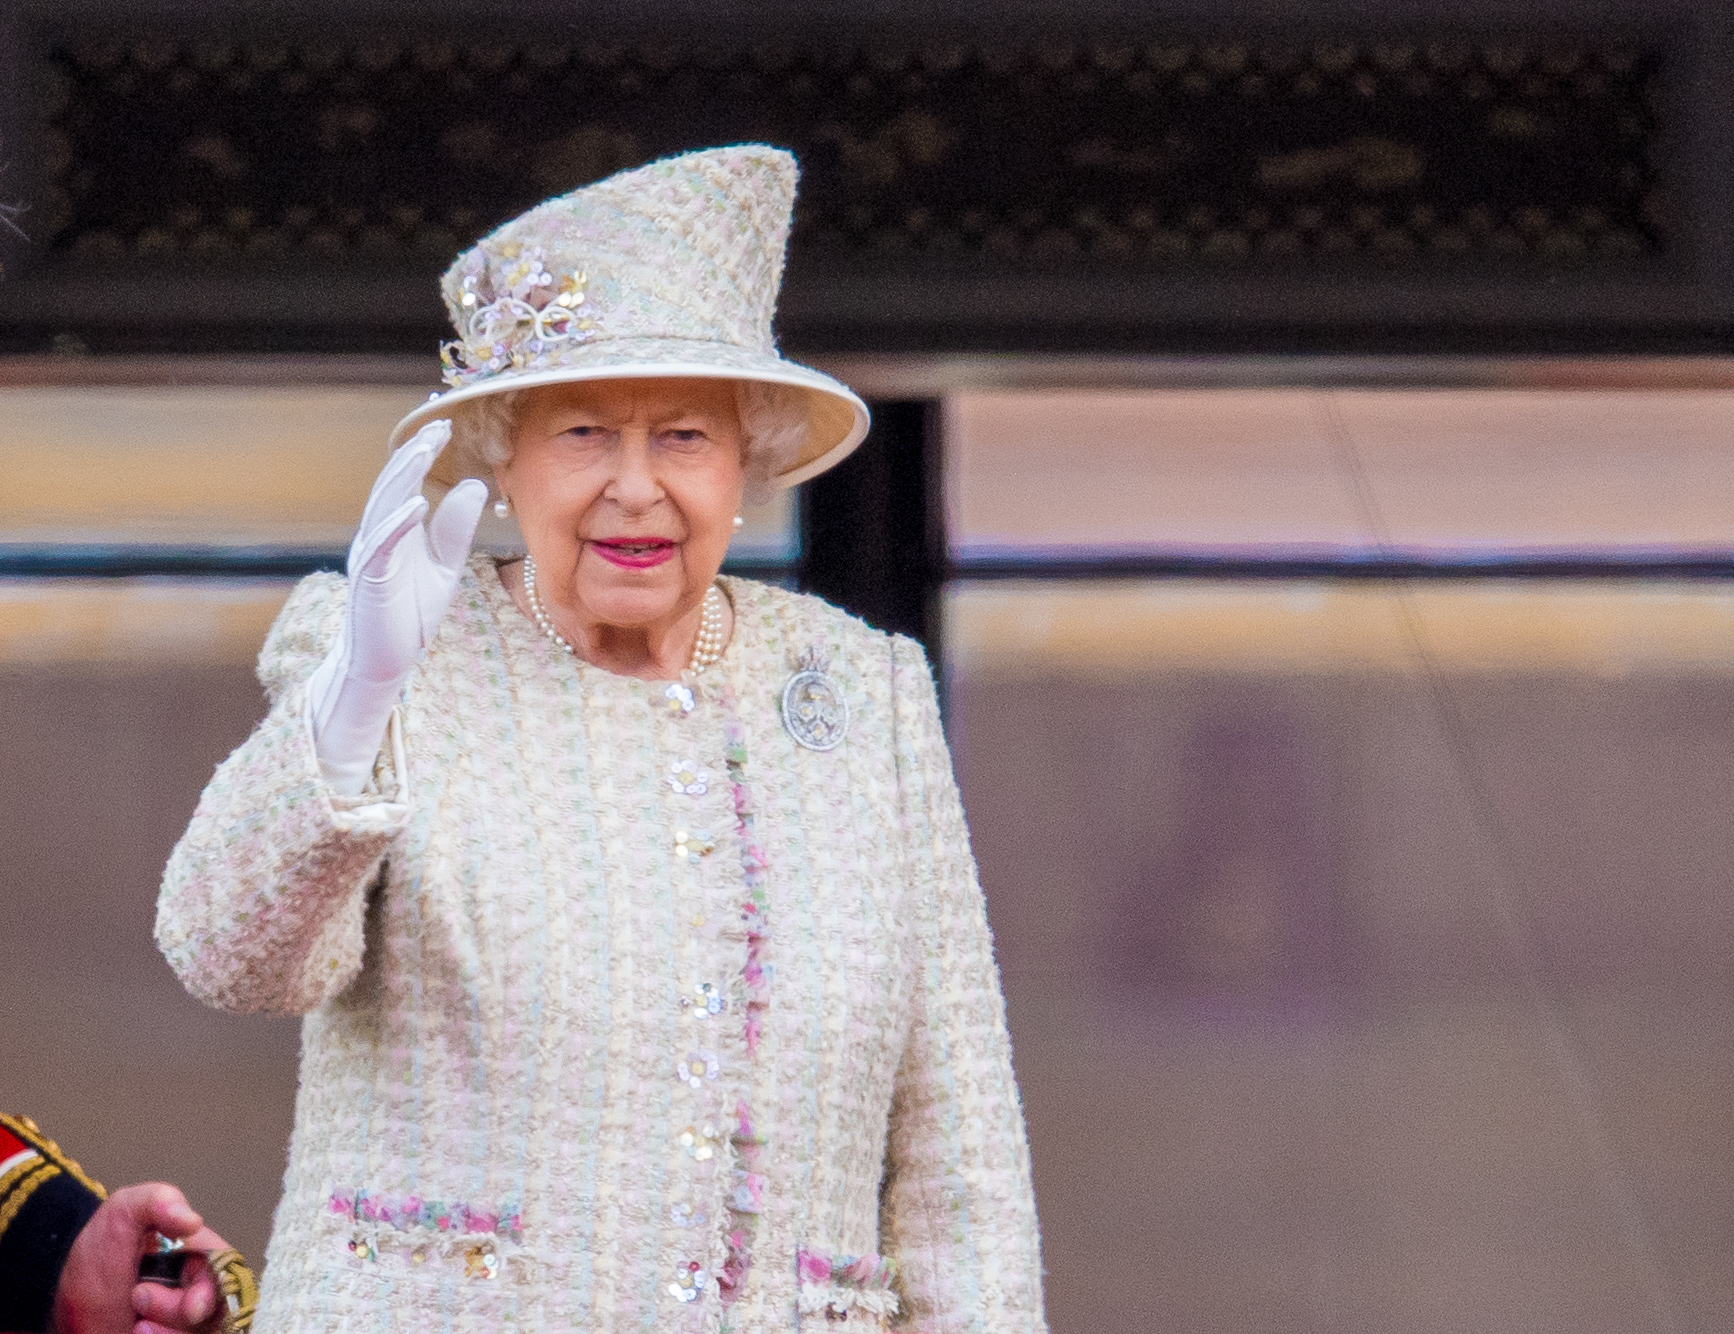 Queen Elizabeth II during Trooping the Colour ceremony, marking the monarch's official birthday, in London. (Photo by DPPA/Sipa USA)